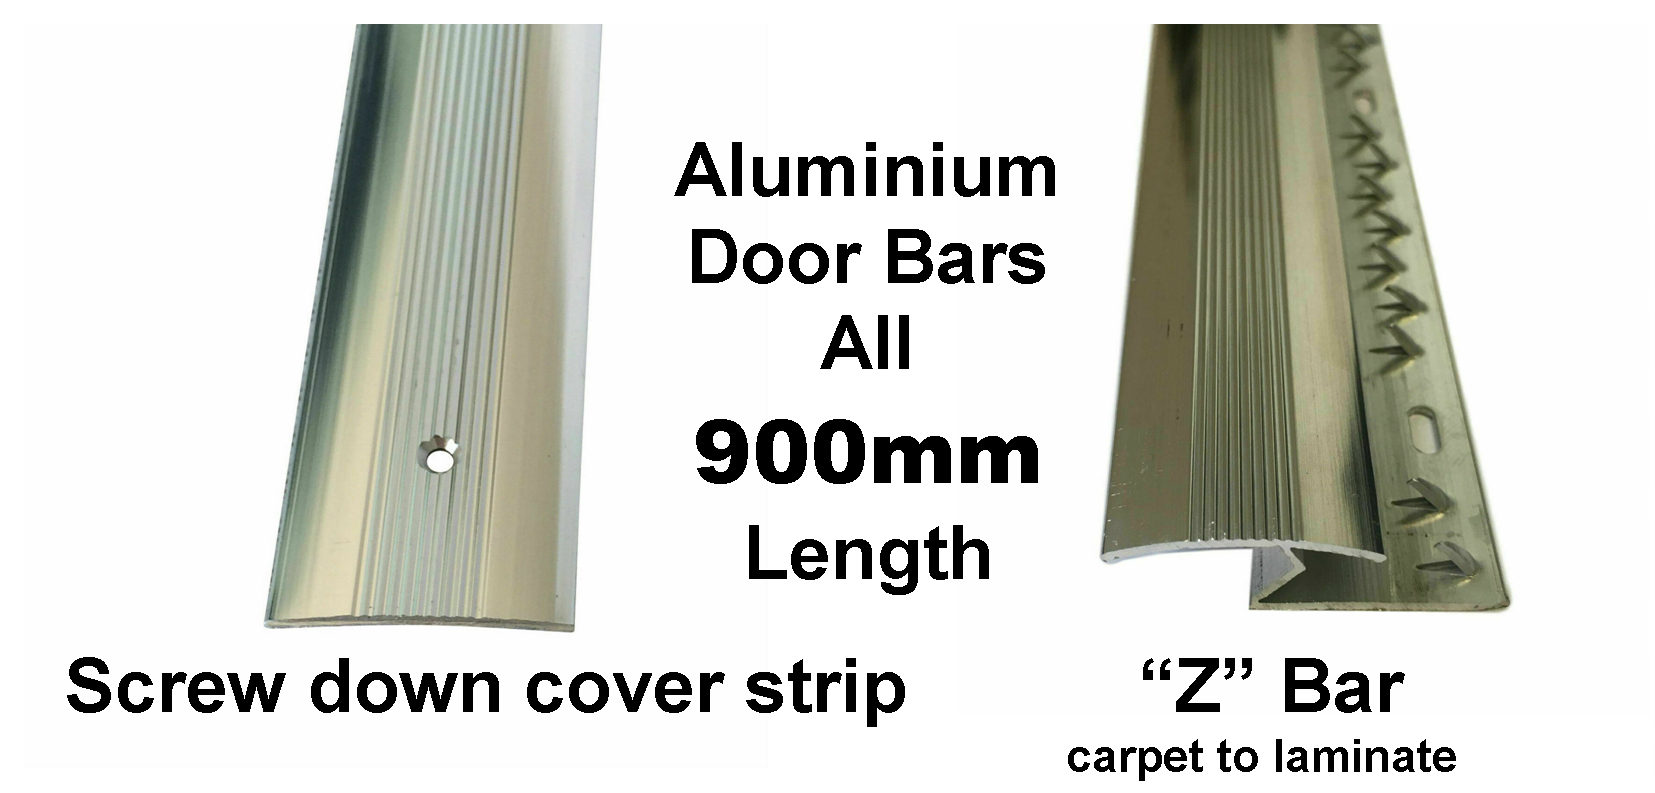 screw down cover strip and Z door bars